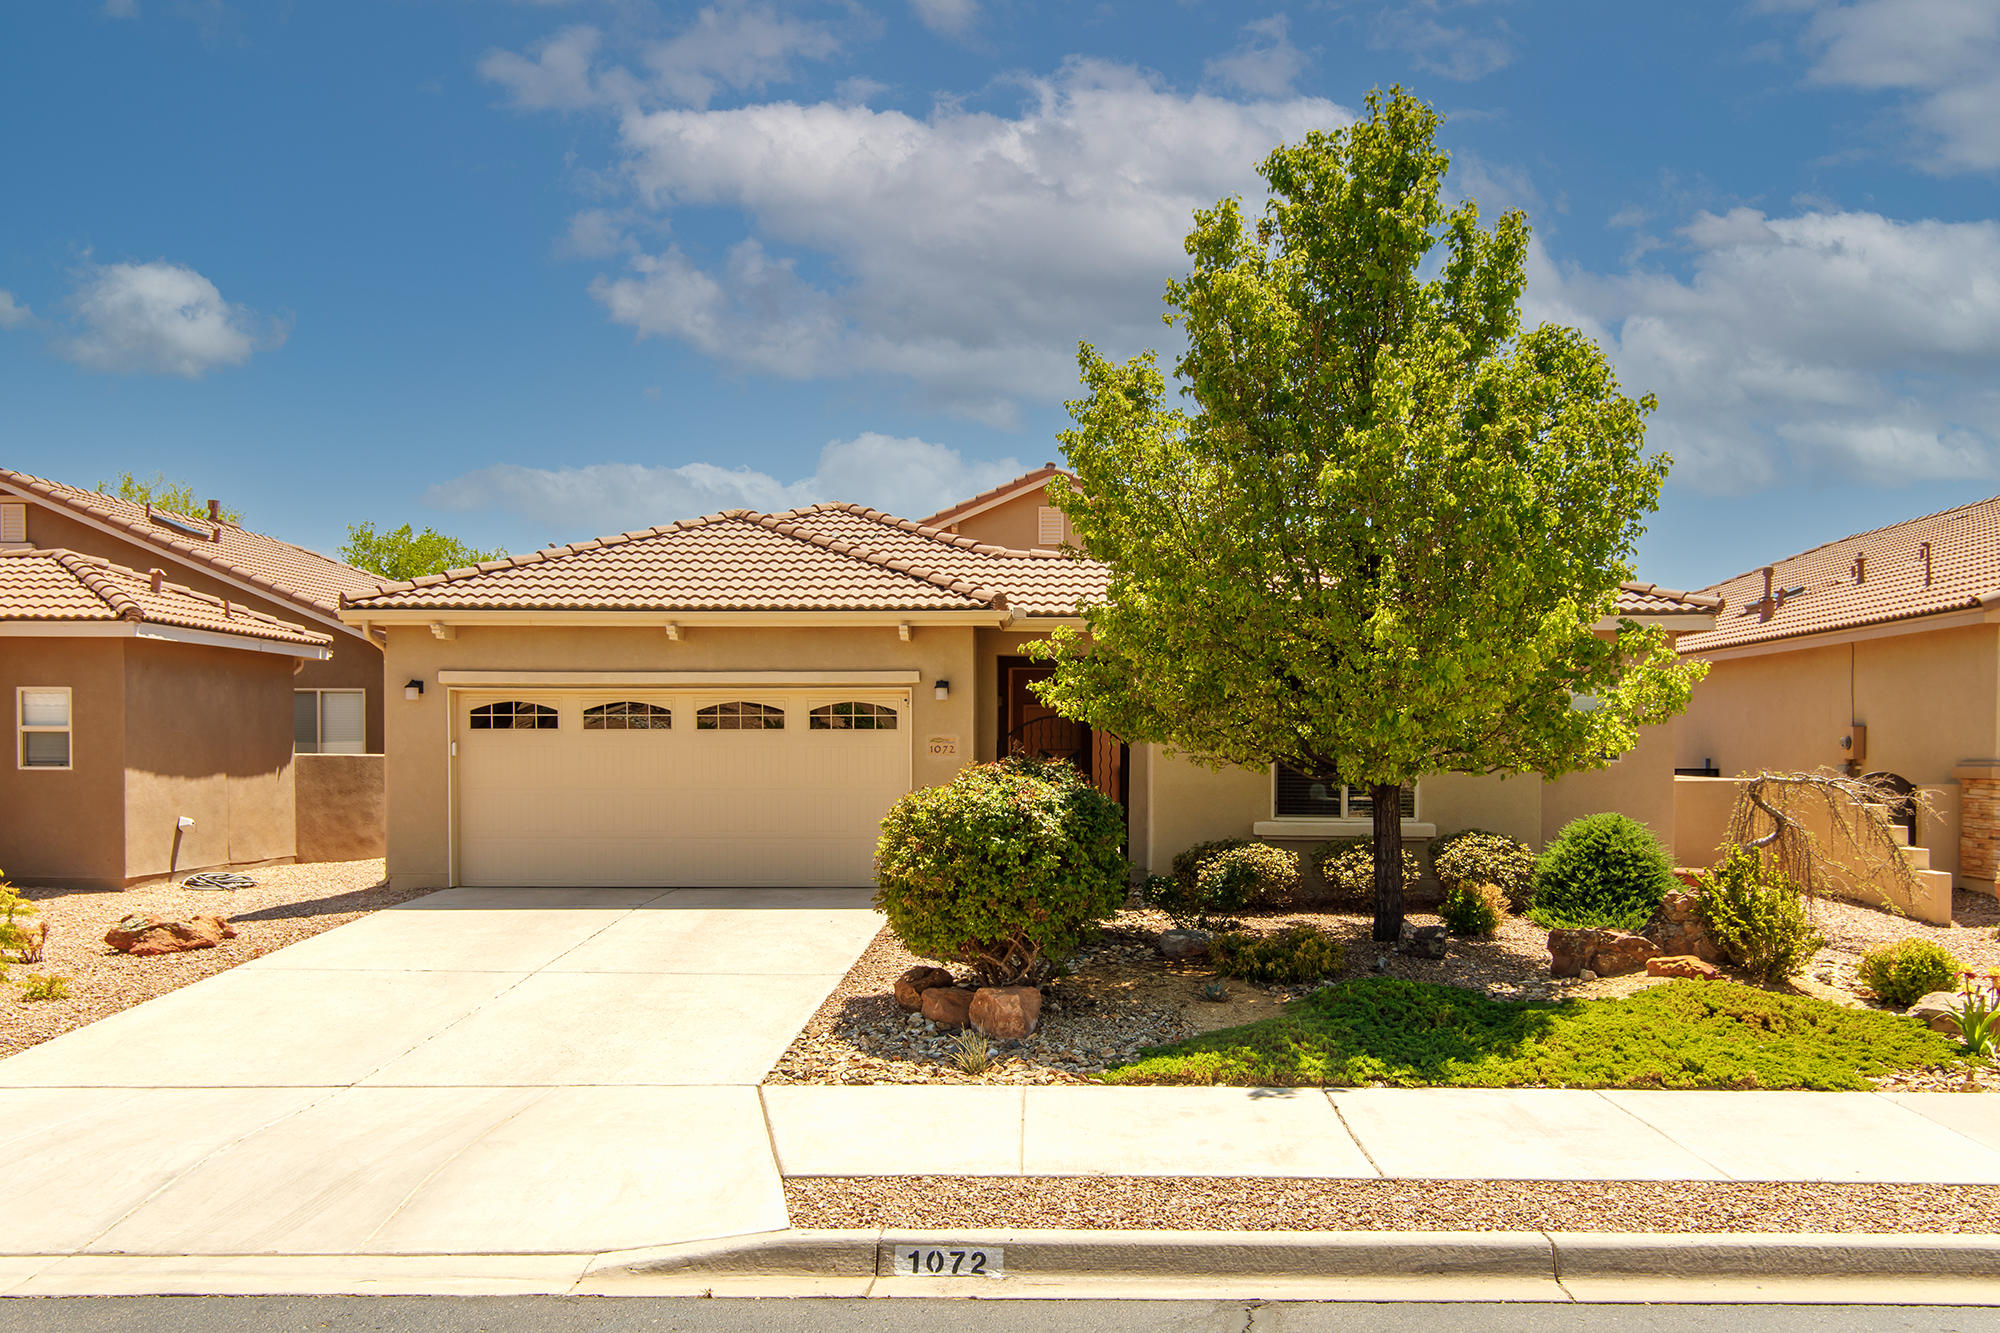 1072 PRAIRIE ZINNIA Drive Property Photo - Bernalillo, NM real estate listing